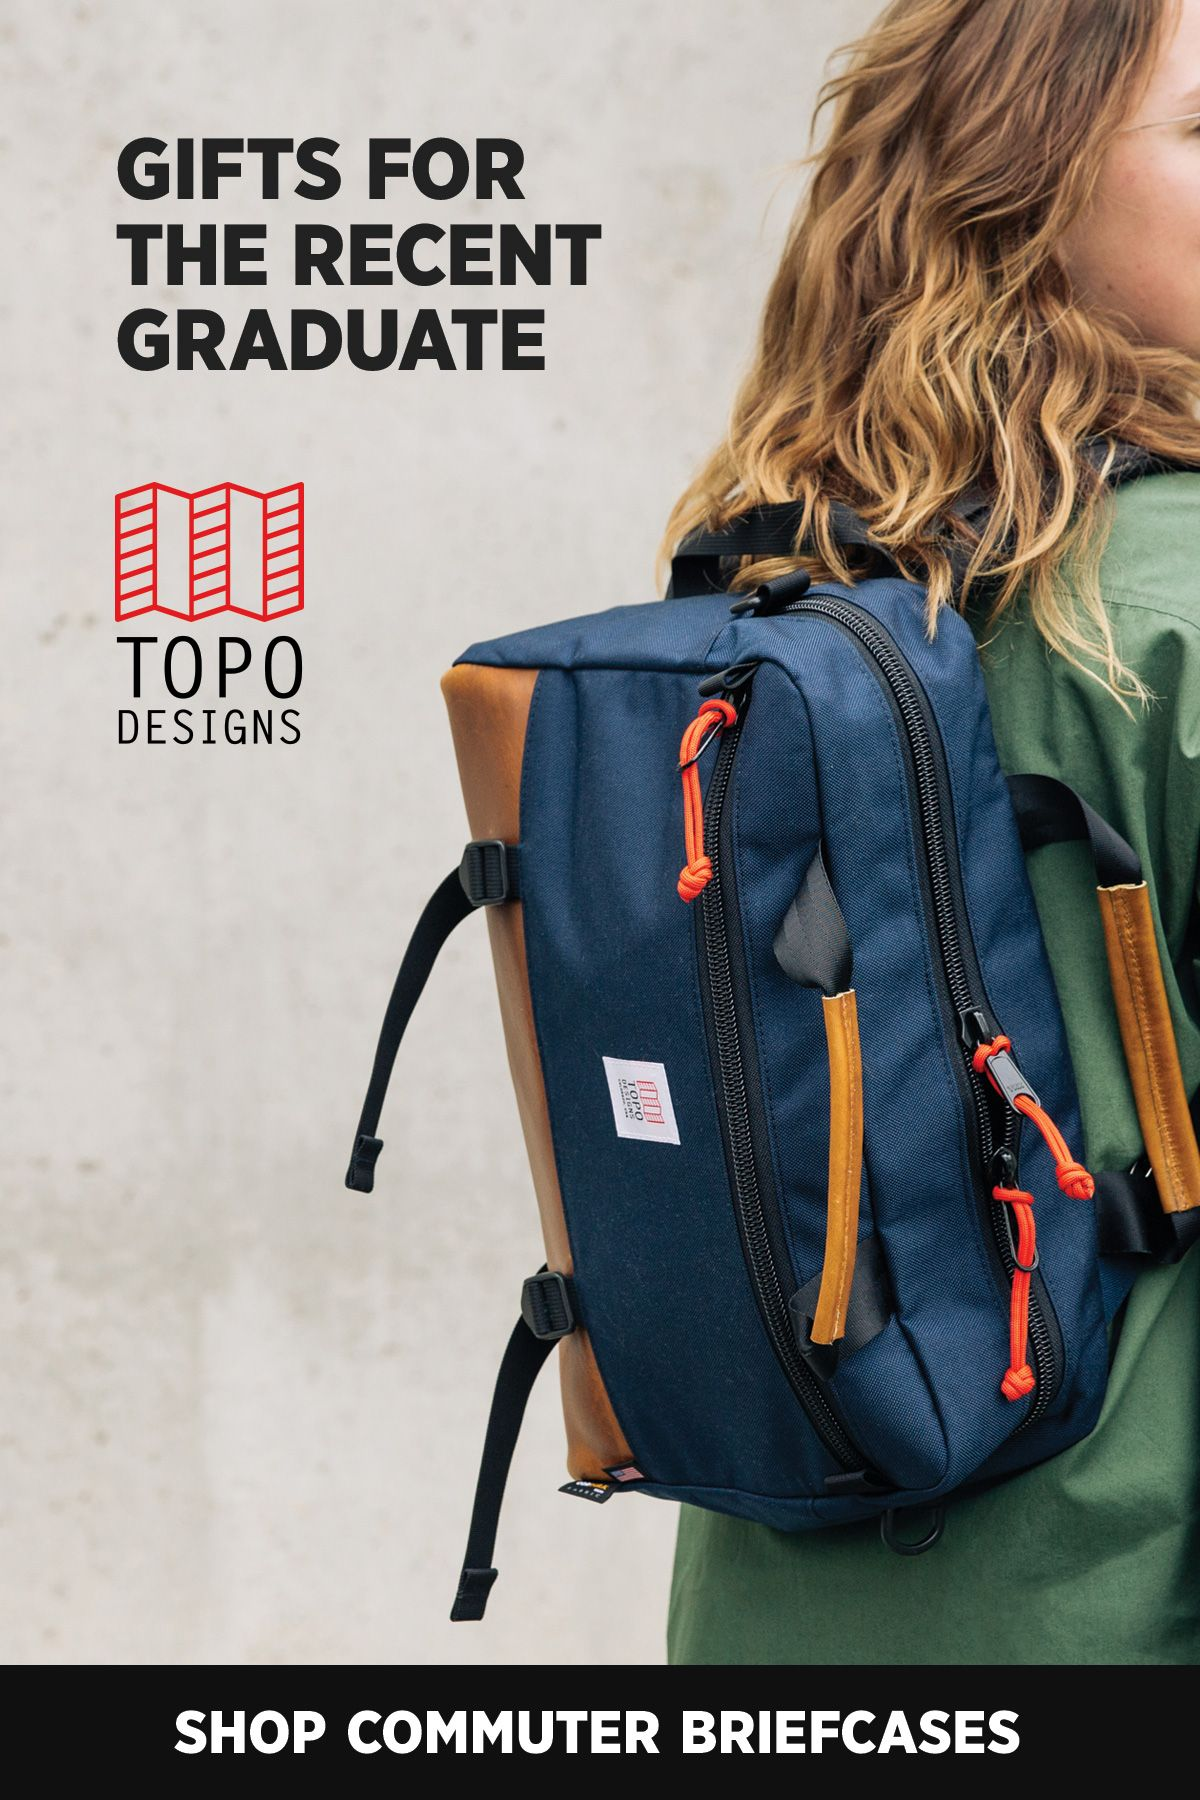 93b3e9672 The Topo Designs Commuter Briefcase. Shop this and more picks for the  recent graduate that help transition from the classroom to the boardroom.  Packs and ...